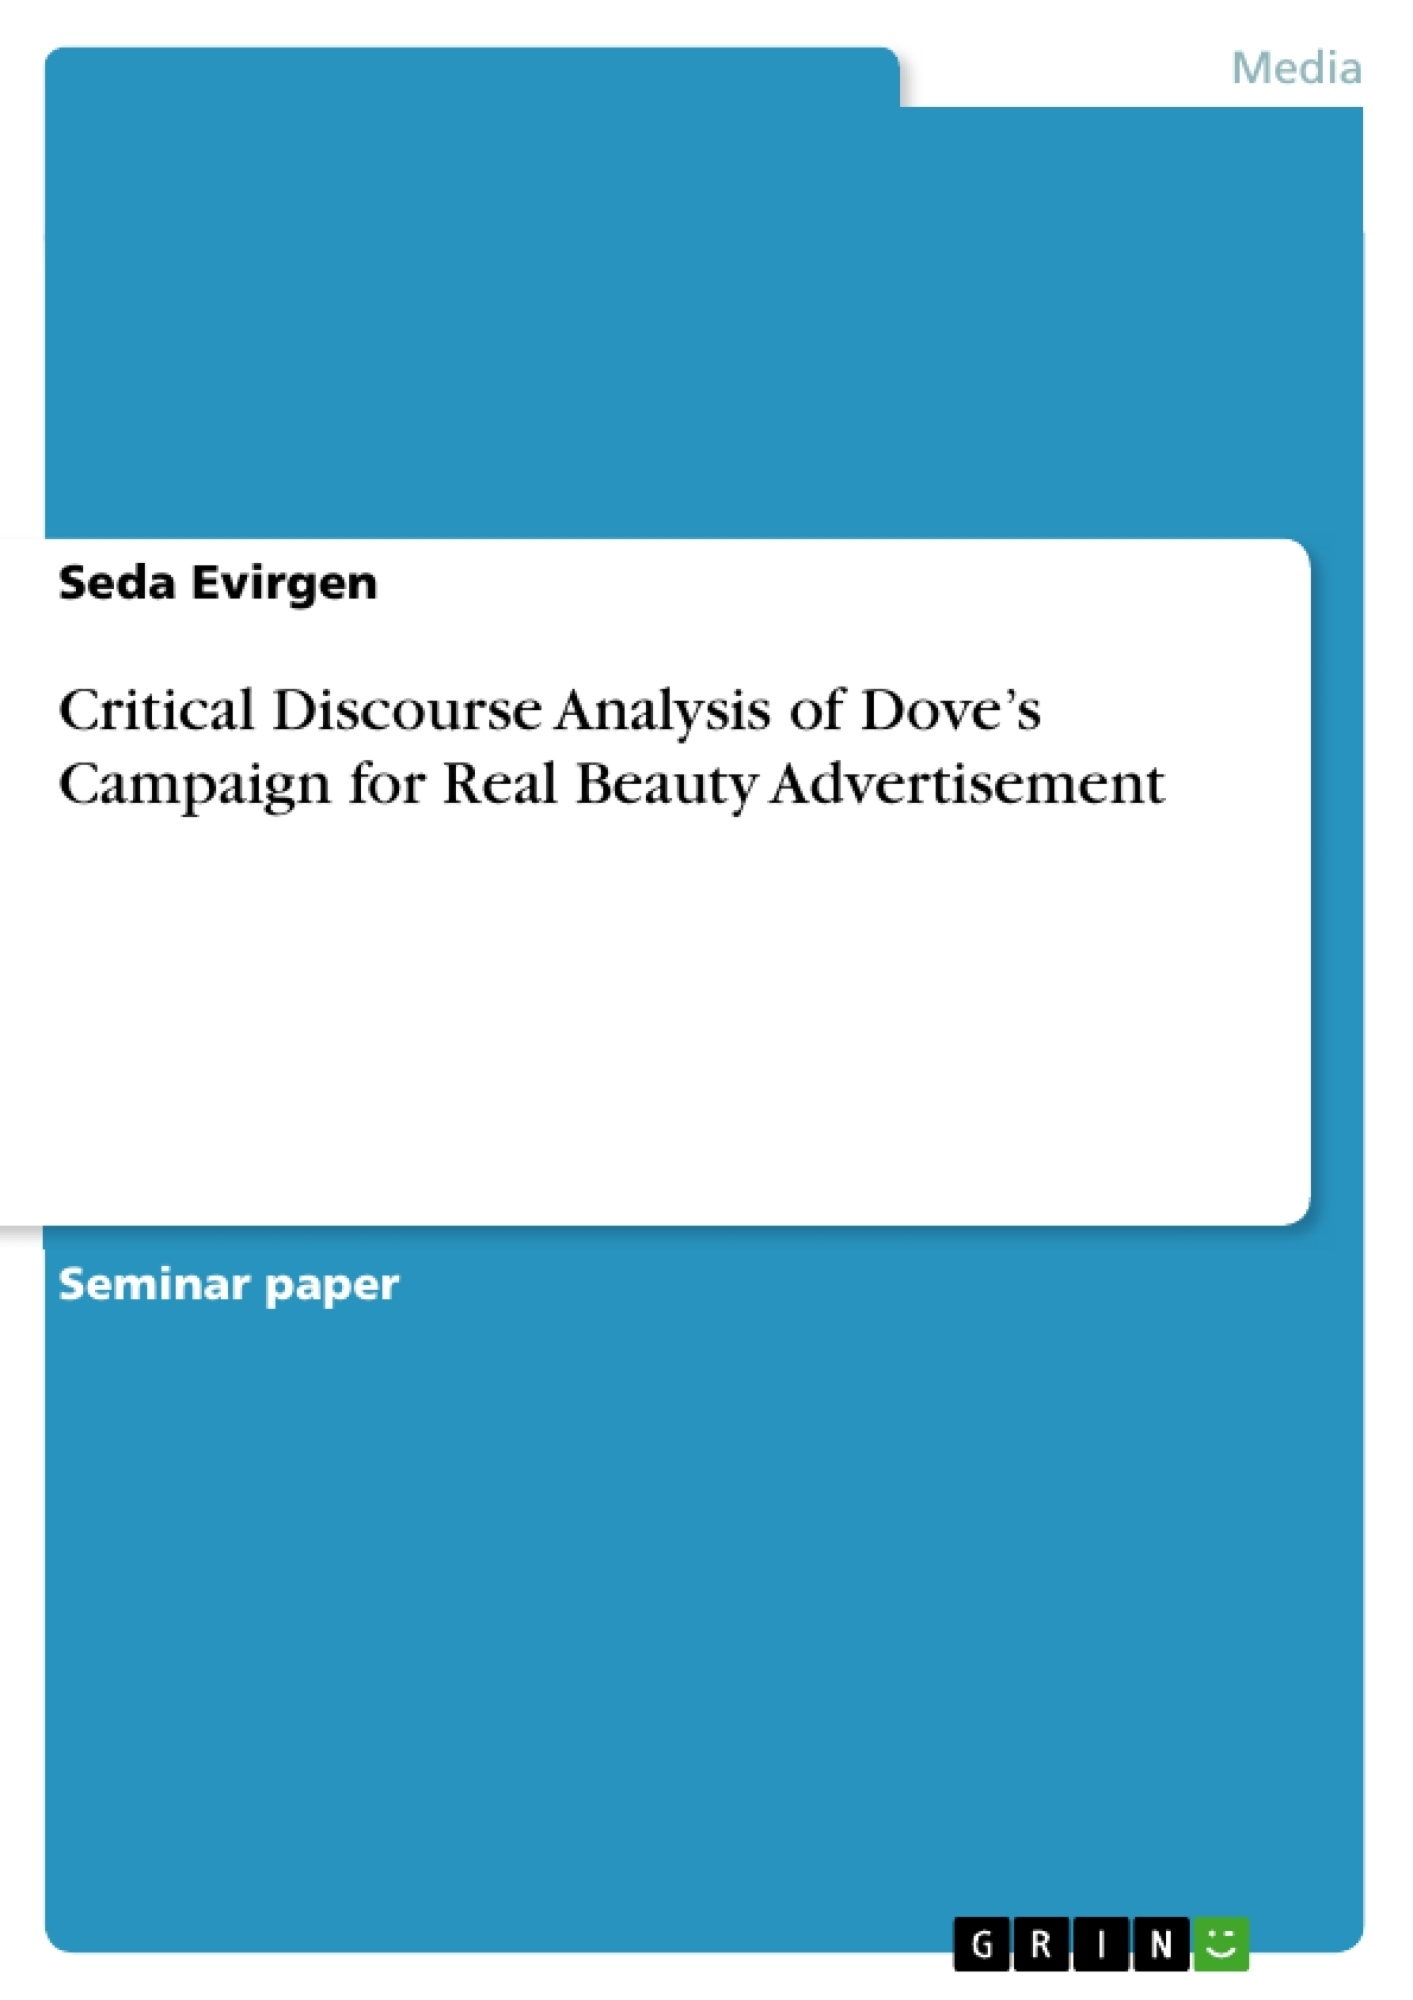 Title: Critical Discourse Analysis of Dove's Campaign for Real Beauty Advertisement